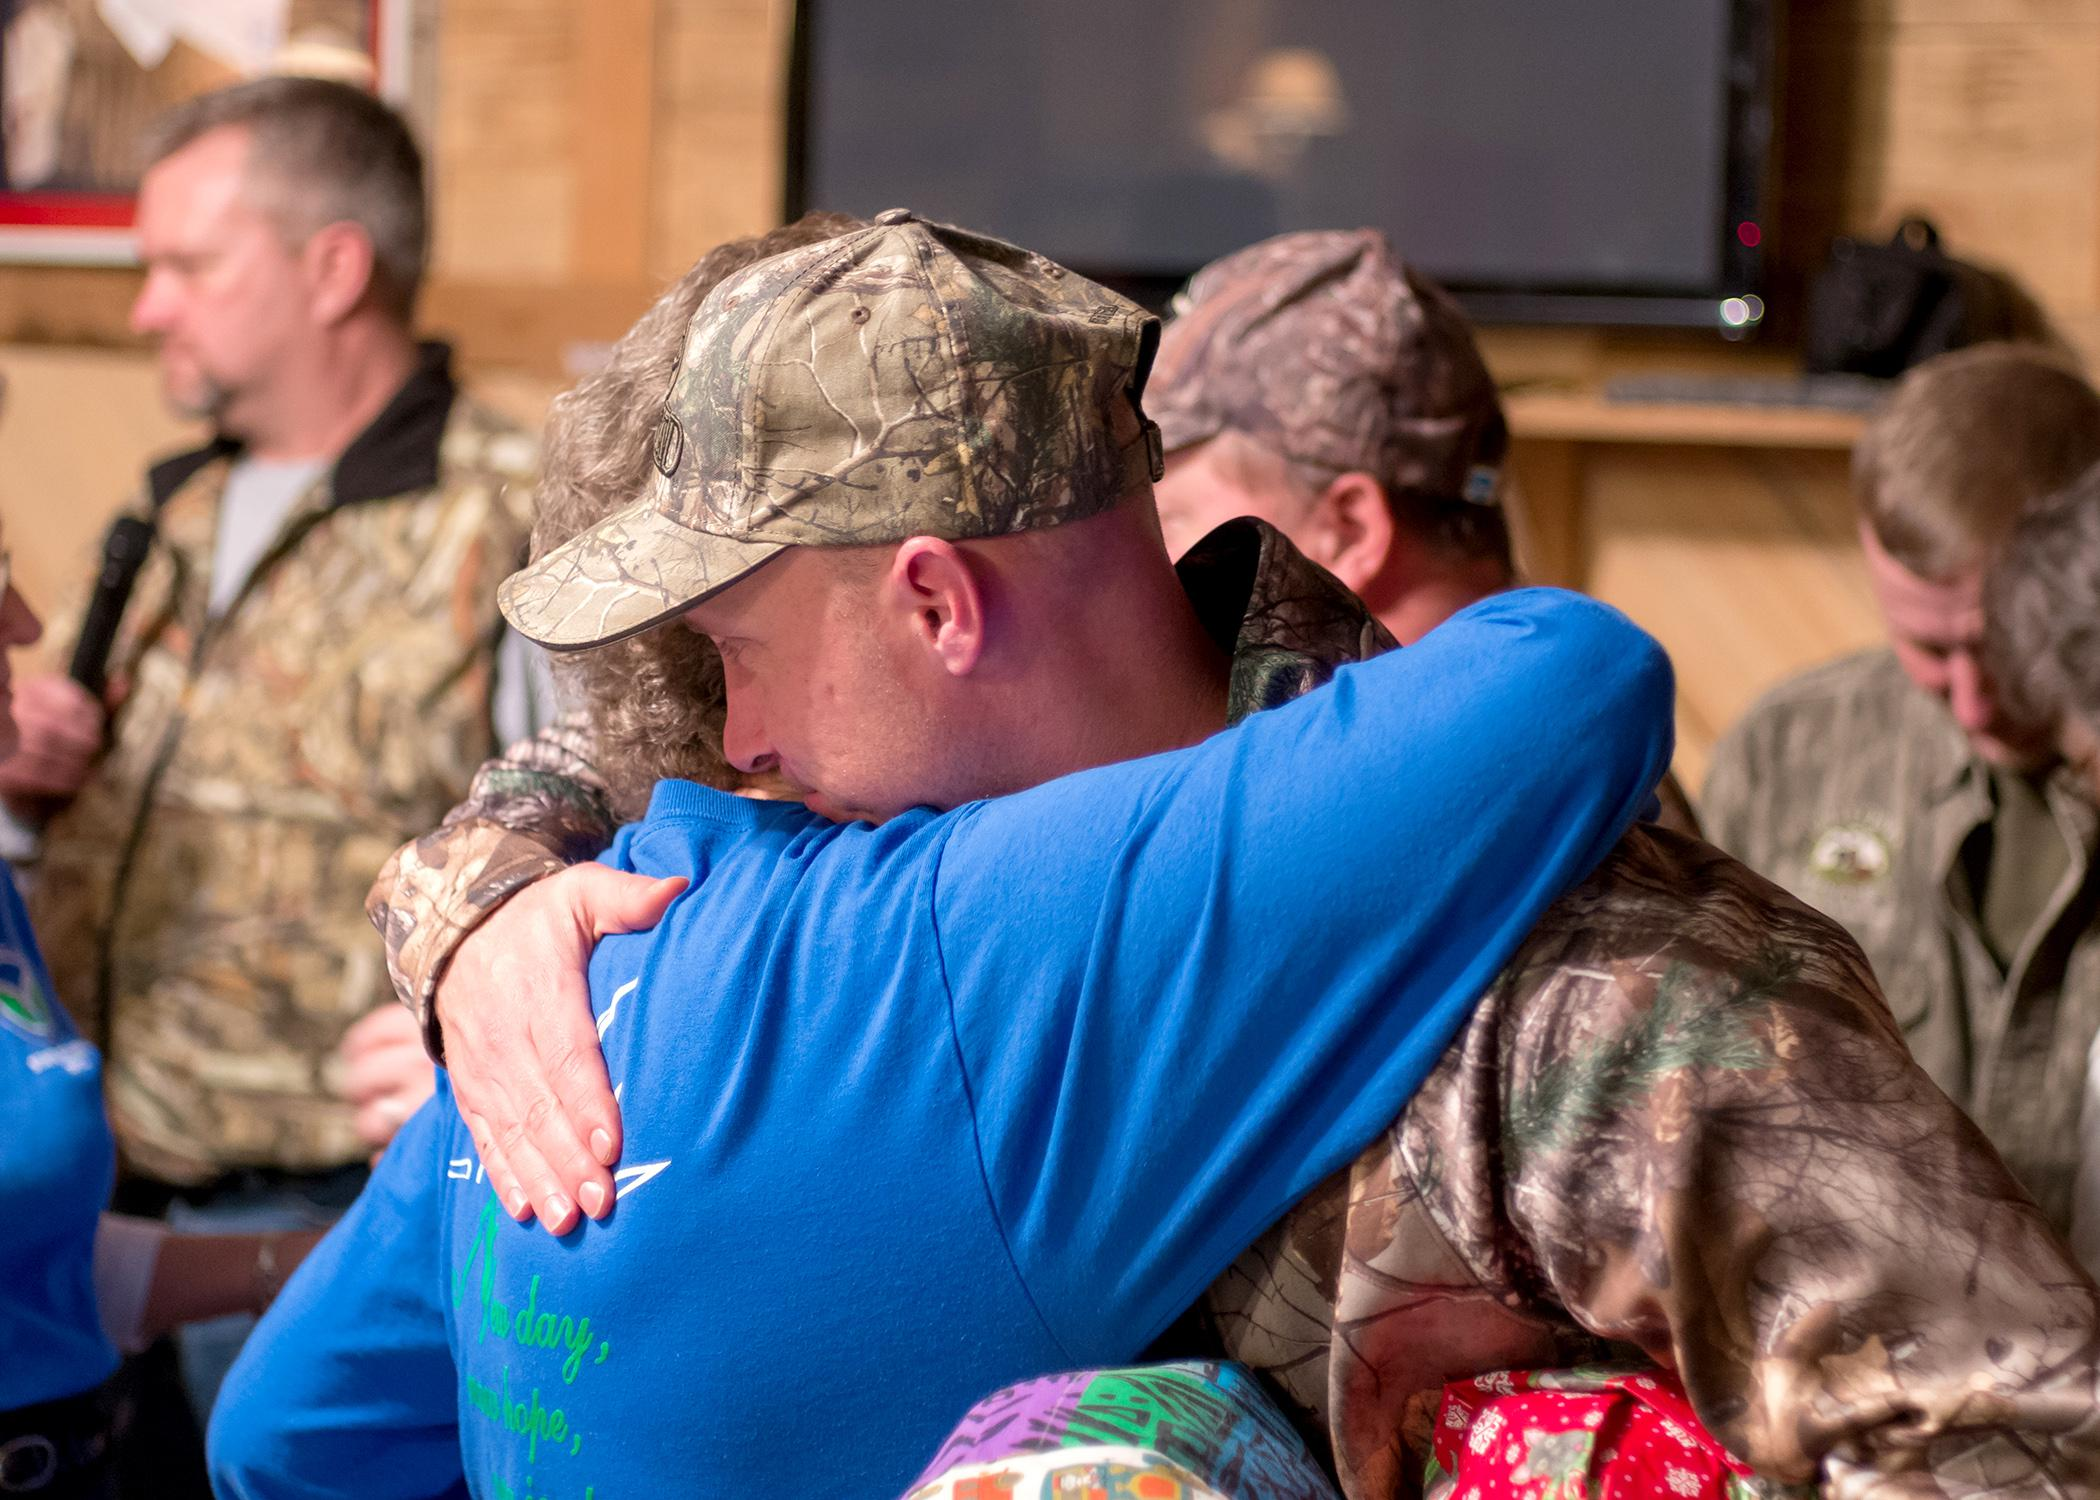 Wanda Hall of Mt. Olive hugs Paul O'Neill of Memphis, Tennessee, a veteran of the U.S. Army's 3rd Stryker Brigade on Dec. 12, 2014, in appreciation for his military service. O'Neill is one of nine soldiers who participated in the Hot Coffee Hunts for Heroes and received quilts from the Mississippi Homemaker Volunteers of Covington County. (Photo by Robert Lewis)